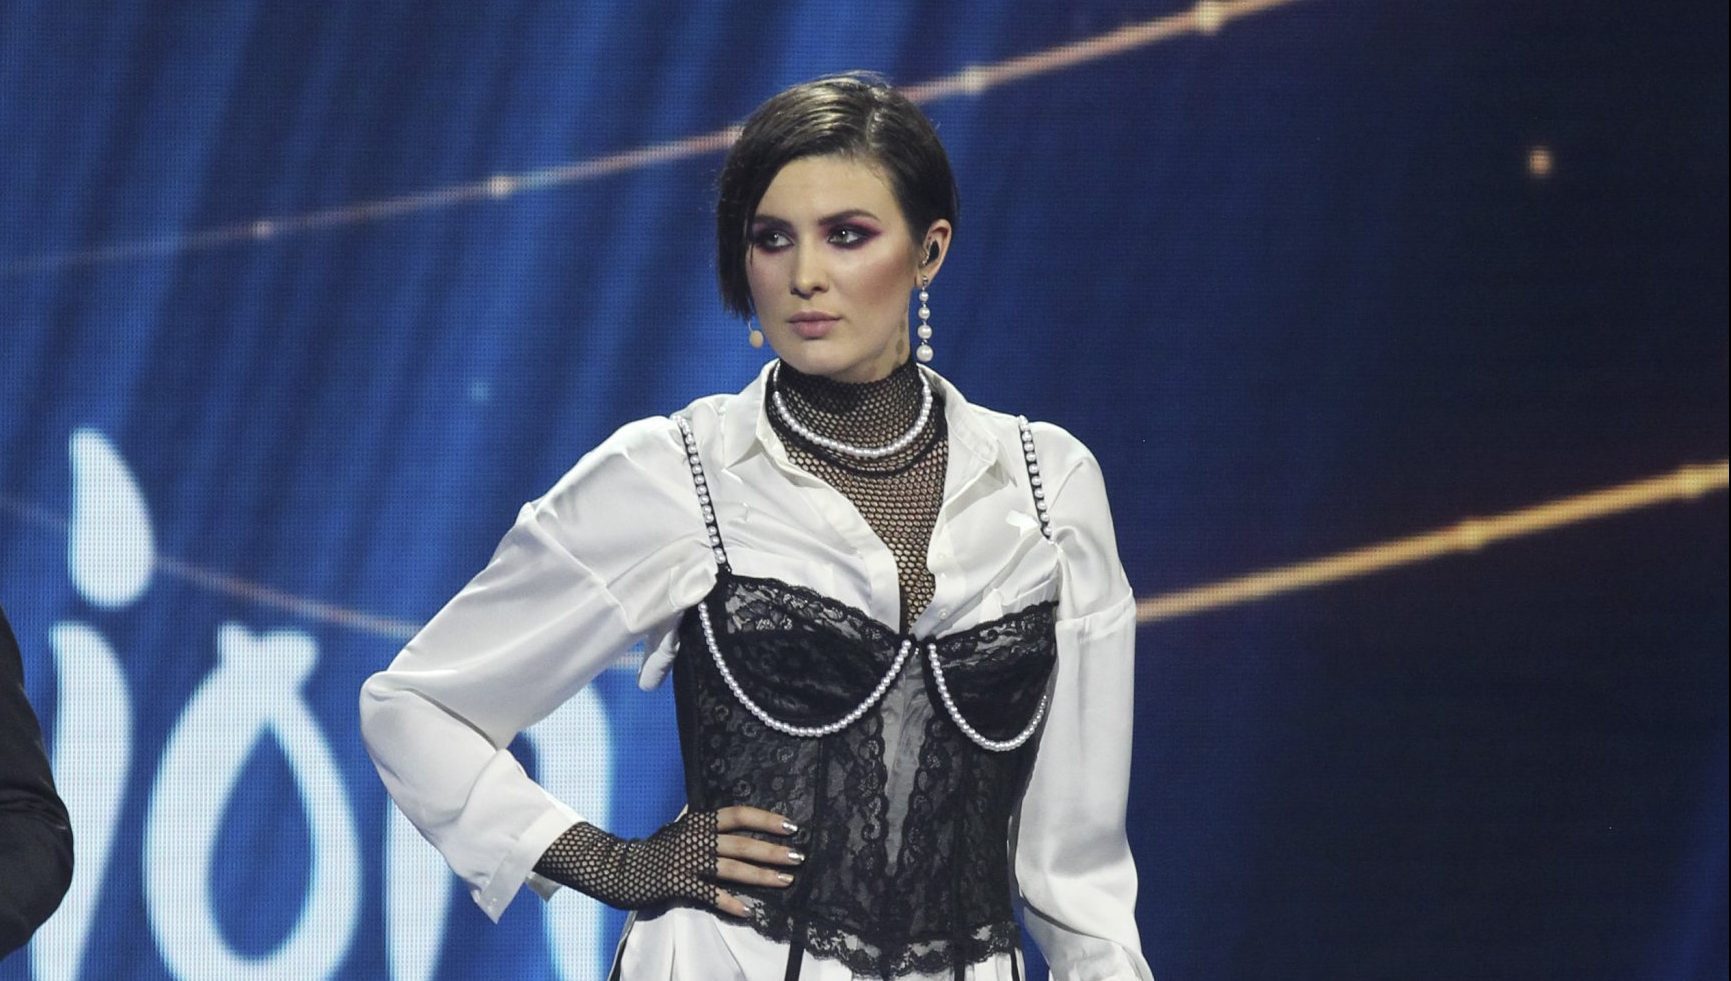 Why is Ukraine not taking part in the Eurovision Song Contest this year?